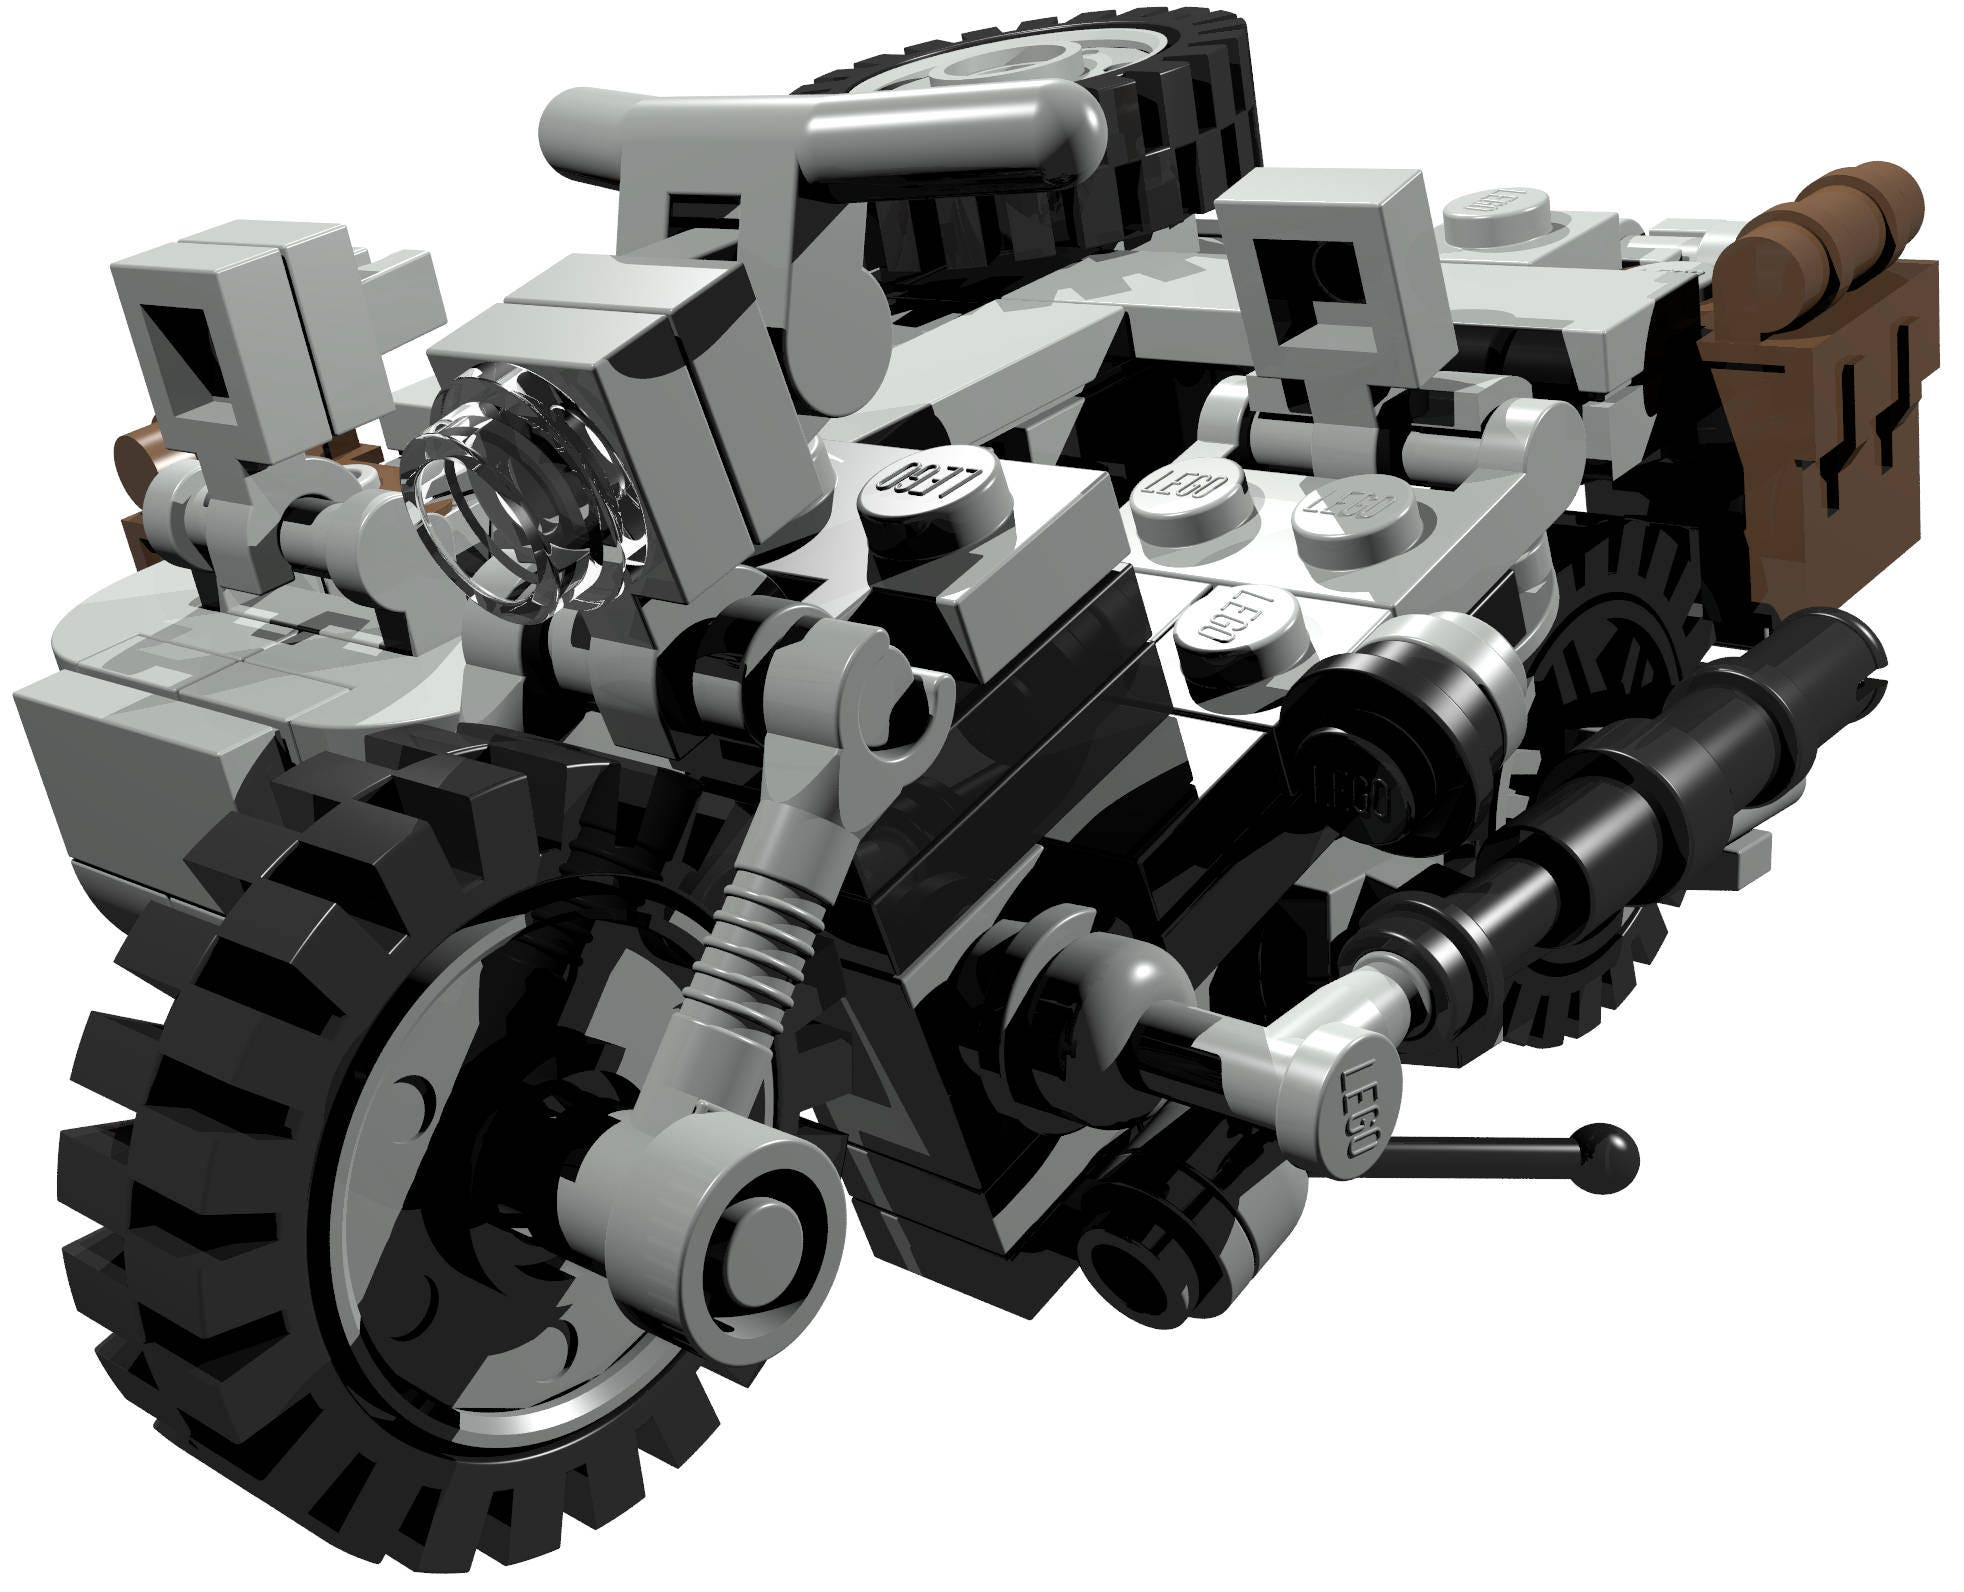 Motorcycle with sidecar professionell PDF building instructions on how to  build model out of LEGO® bricks